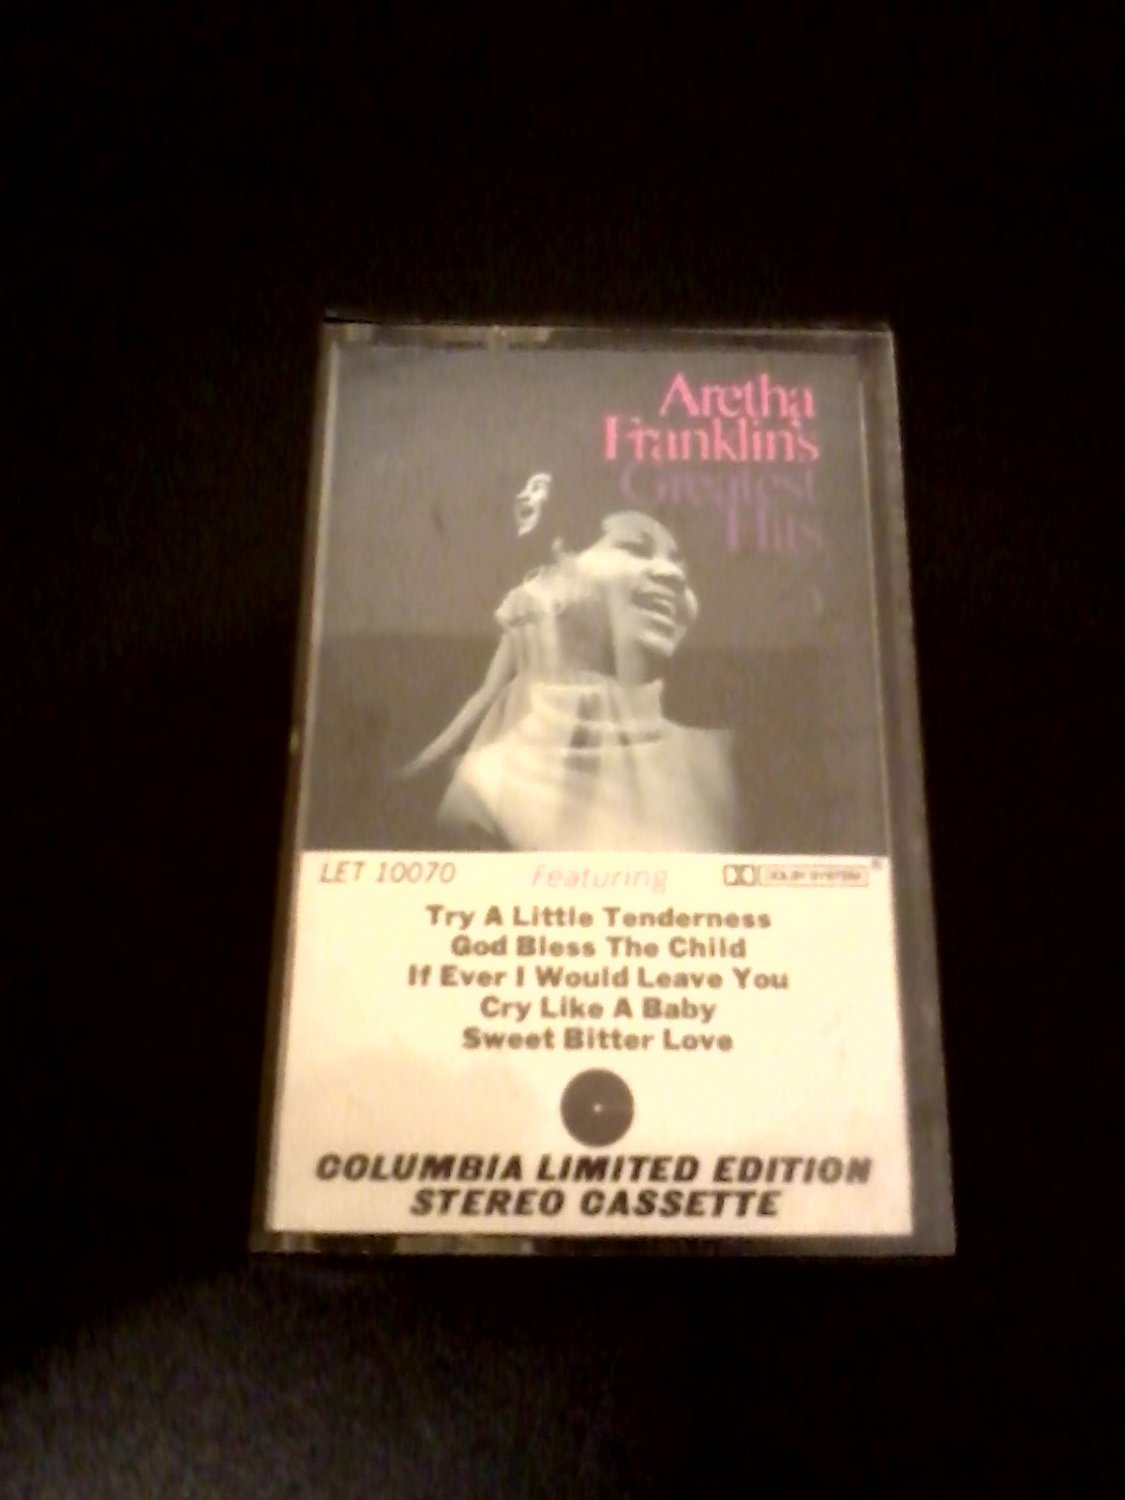 R&B Blues Jazz) Aretha Franklin Greatest Hits VG+  Limited Edition CBS Cassette